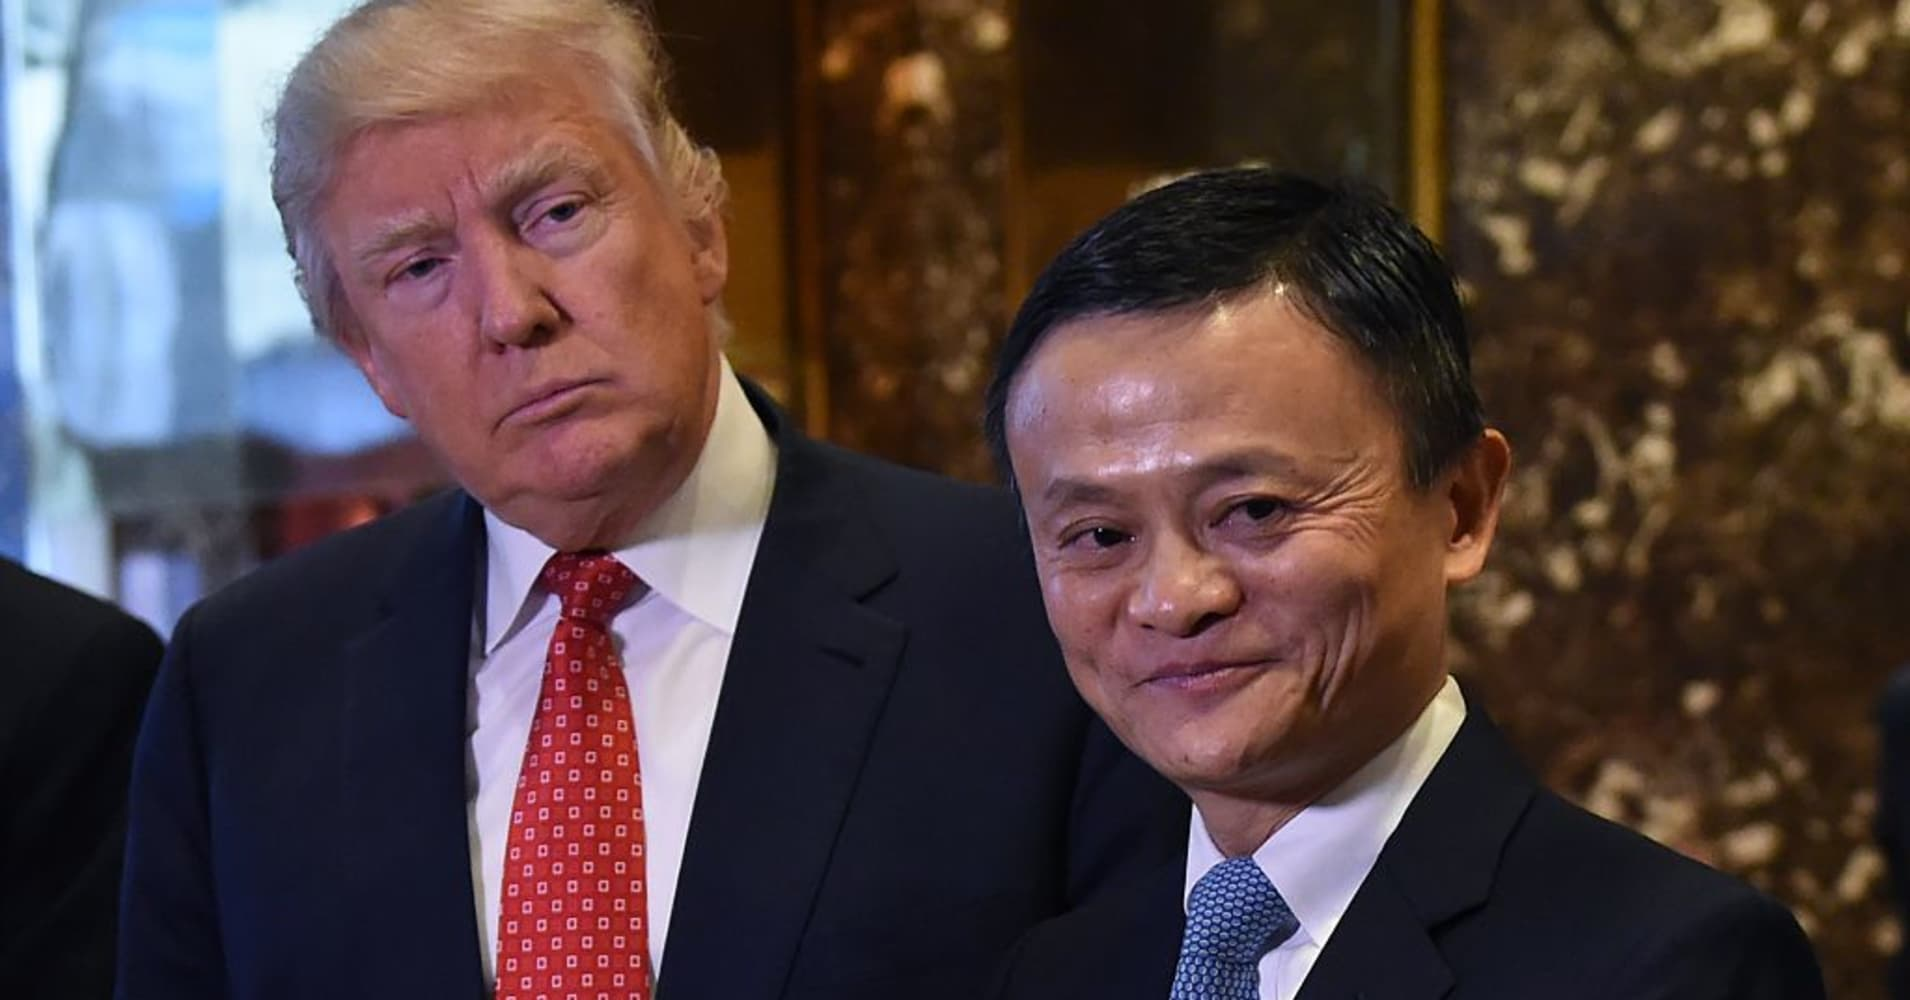 Trump's 'Buy American' policy is getting support from an unlikely place: A Chinese e-commerce giant